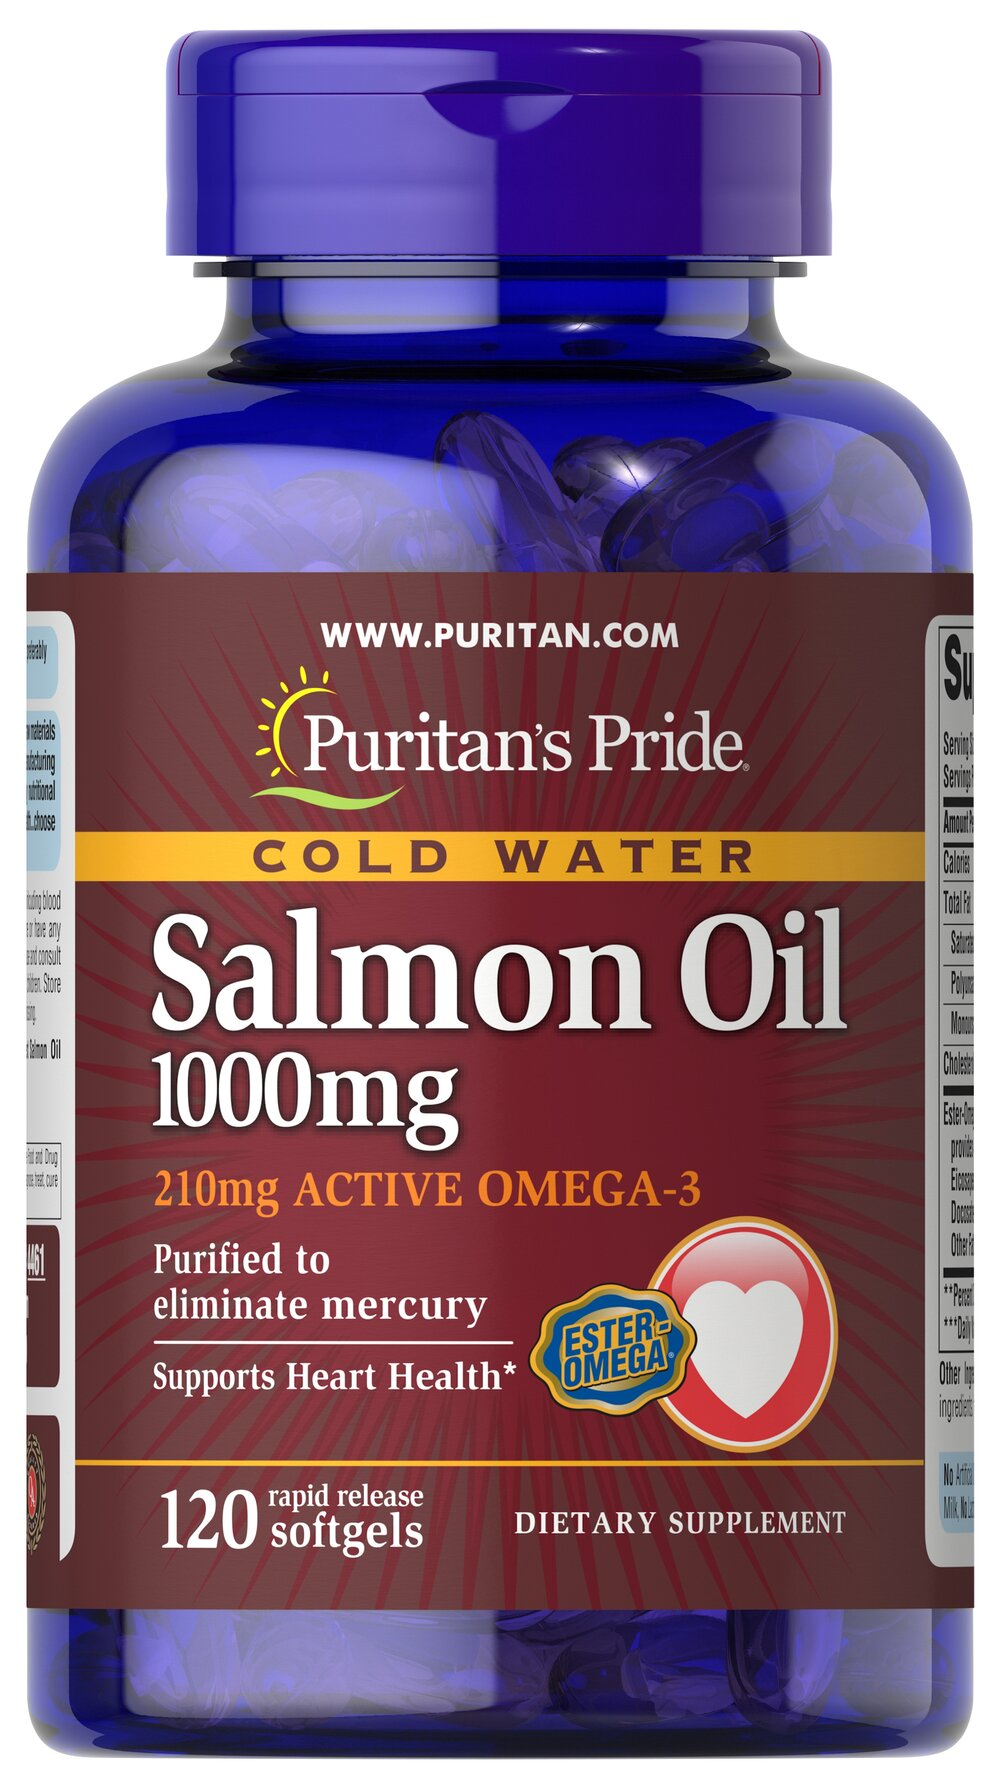 Omega-3 Salmon Oil 1000 mg (210 mg Active Omega-3) <p><strong>Purified to Eliminate Mercury</strong></p><p>Puritan's Pride Salmon Oil contains the finest Salmon Oil available. Take two softgels two times a day to gain the essential fatty acids your body needs for good health.** Salmon contains a high concentration of Omega-3 fatty acids that have been shown to help promote metabolic, circulatory and heart health.**</p> 120 Softgels 1000 mg $20.59